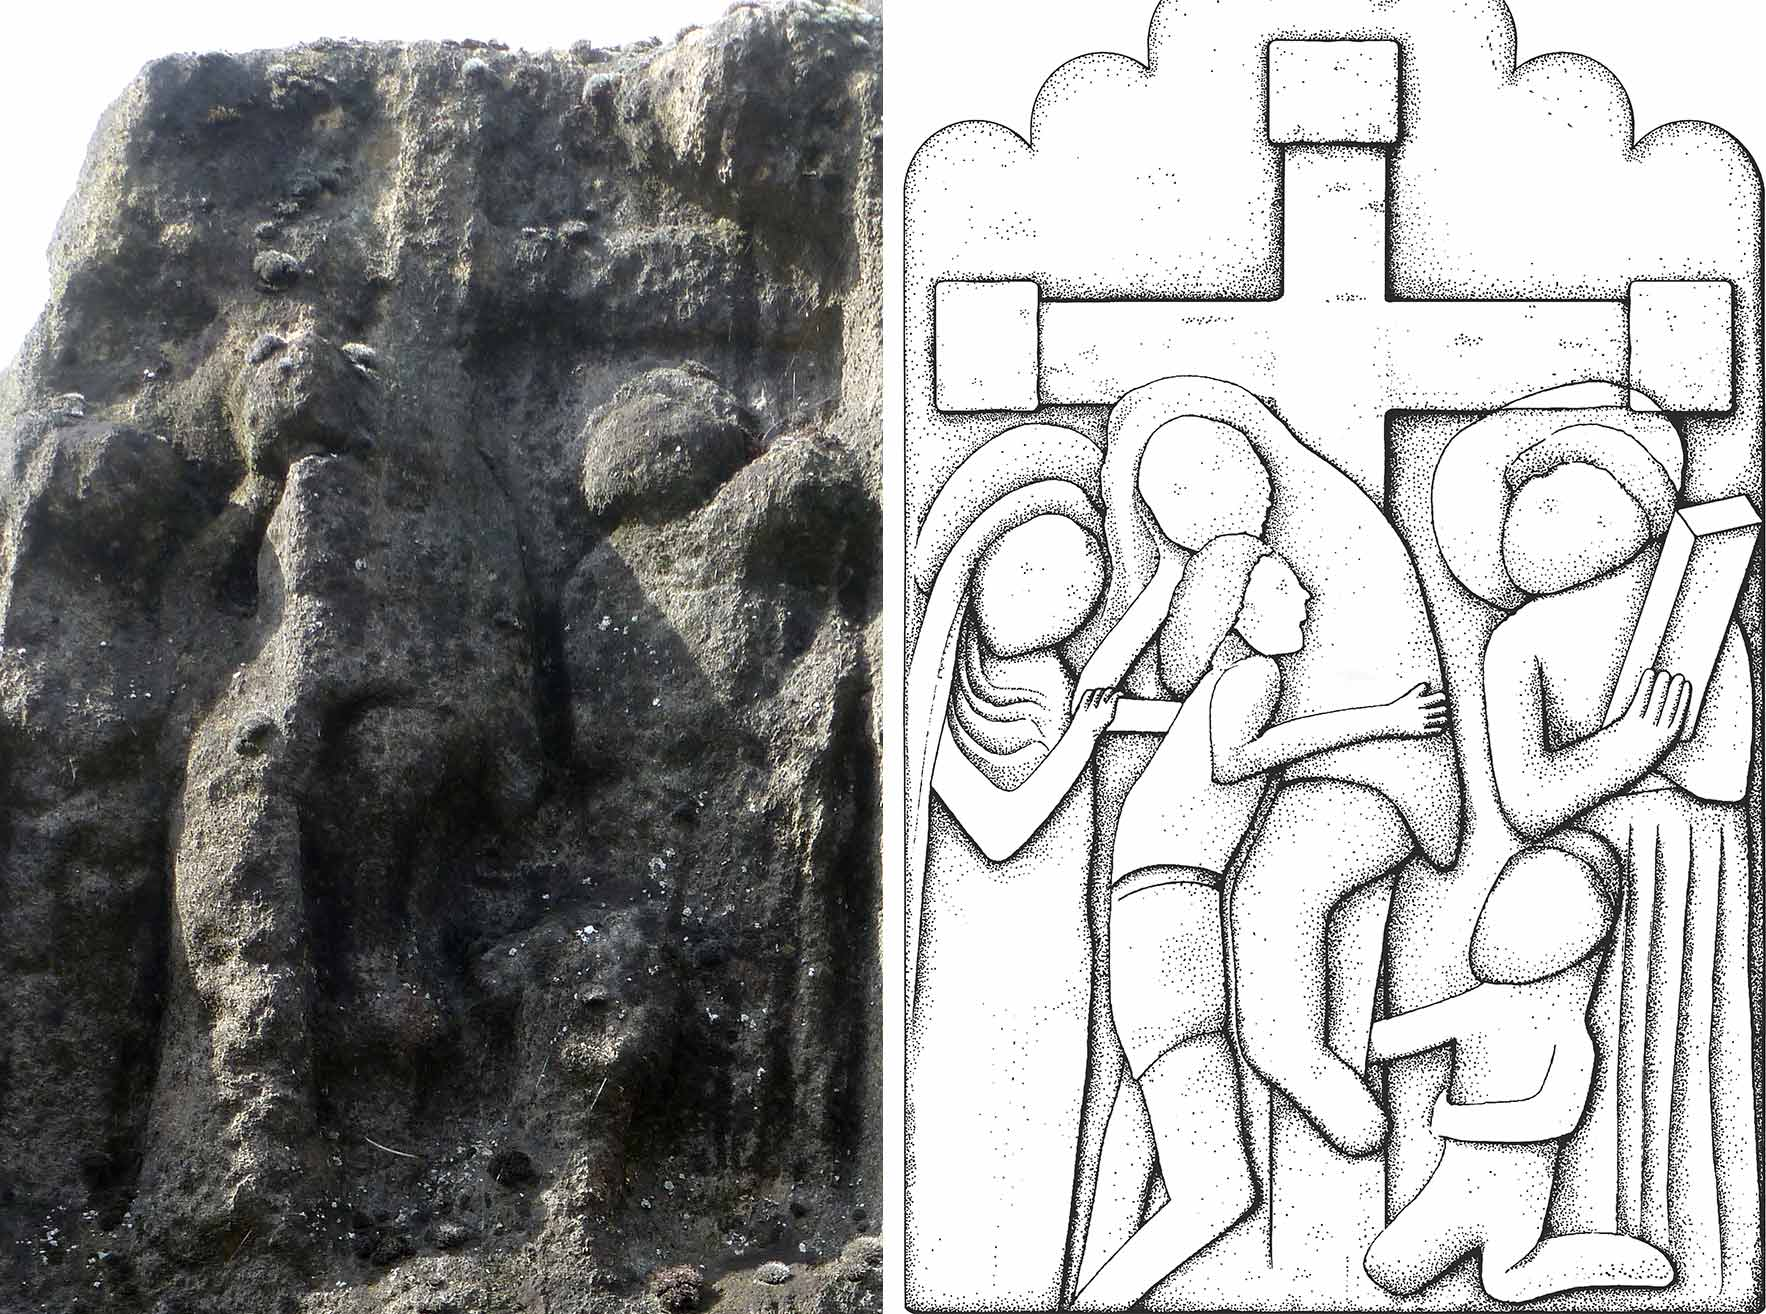 A reconstruction (right) of the depiction of the Descent from the Cross on the east face (left)